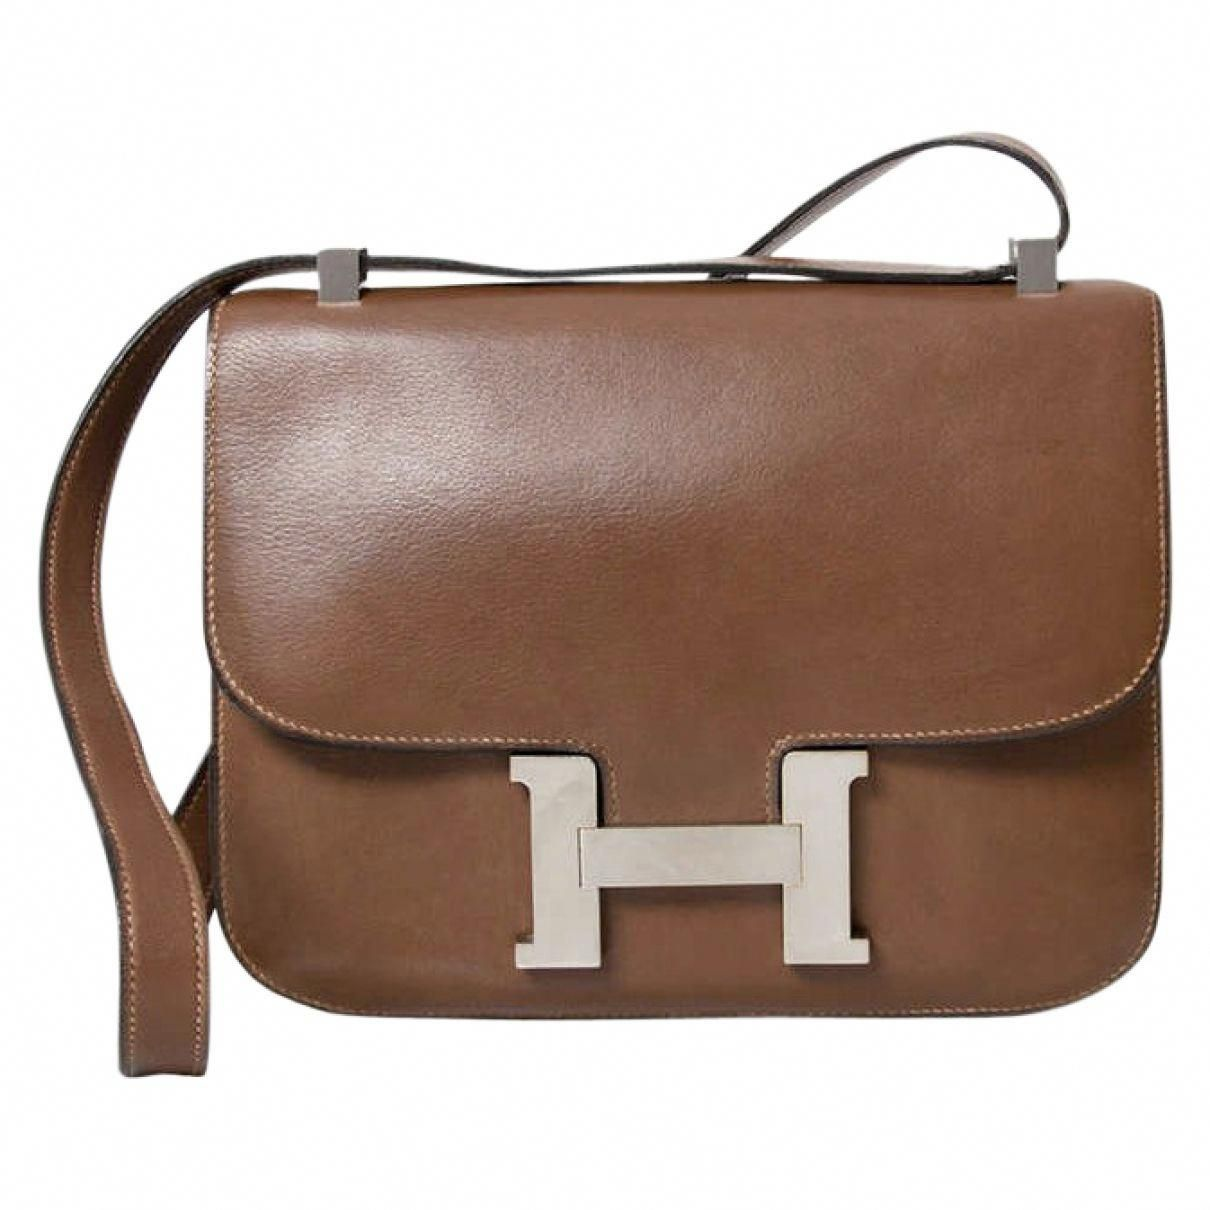 0c2f8c3aae86 HERMÈS Brown Leather Handbag Constance